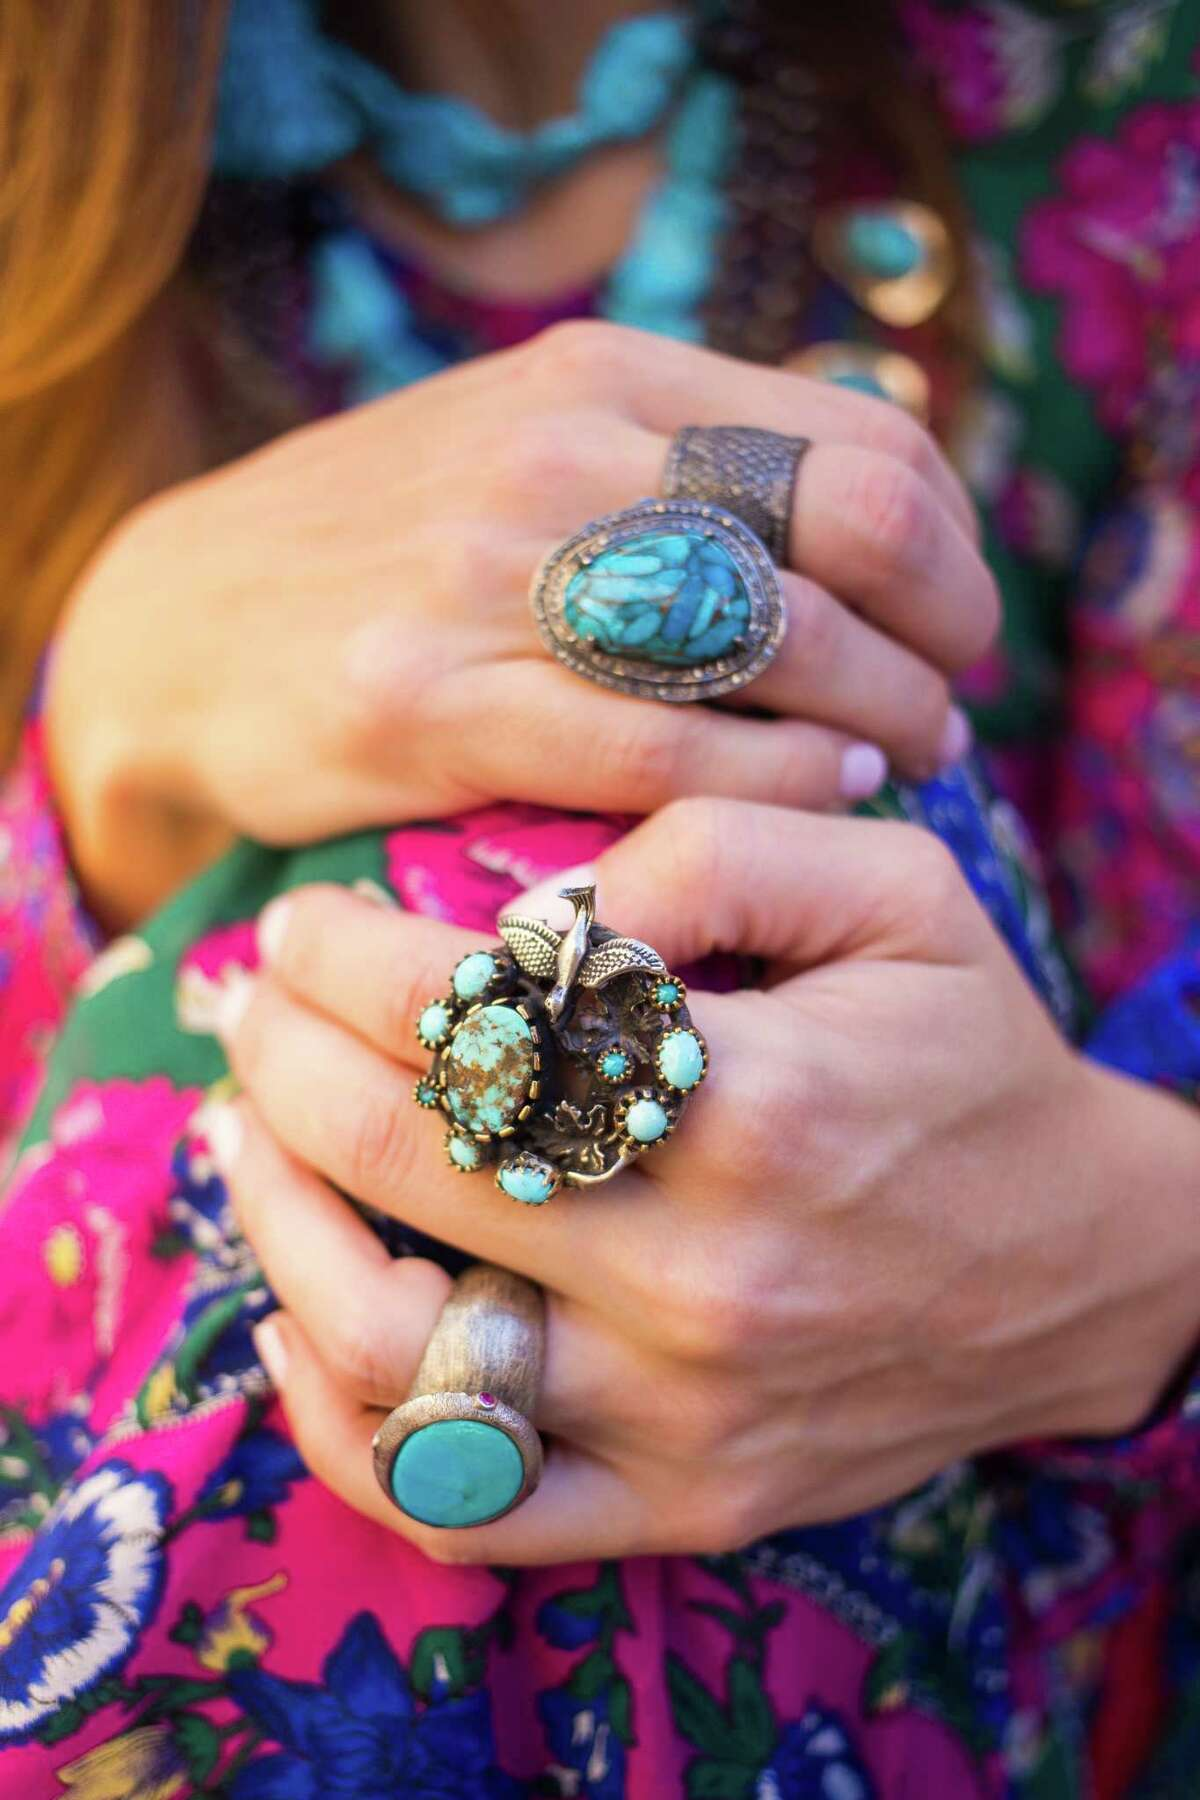 RODEO FASHION: Dress from Anthropologie - $228. Squash blossom necklace - $1,800, Seeping Beauty turquoise necklaces (she�'s wearing two of the same necklace) - $300 each, Turquoise tassel earrings - $35, RINGS (from top to bottom in photo) Champagne diamond cigar band - $600, Turquoise ring with diamond surround - $375, Turquoise ring with sterling silver bird - $342, and Turquoise and sterling silver ring - $225. All from J. Landa in Rice Village